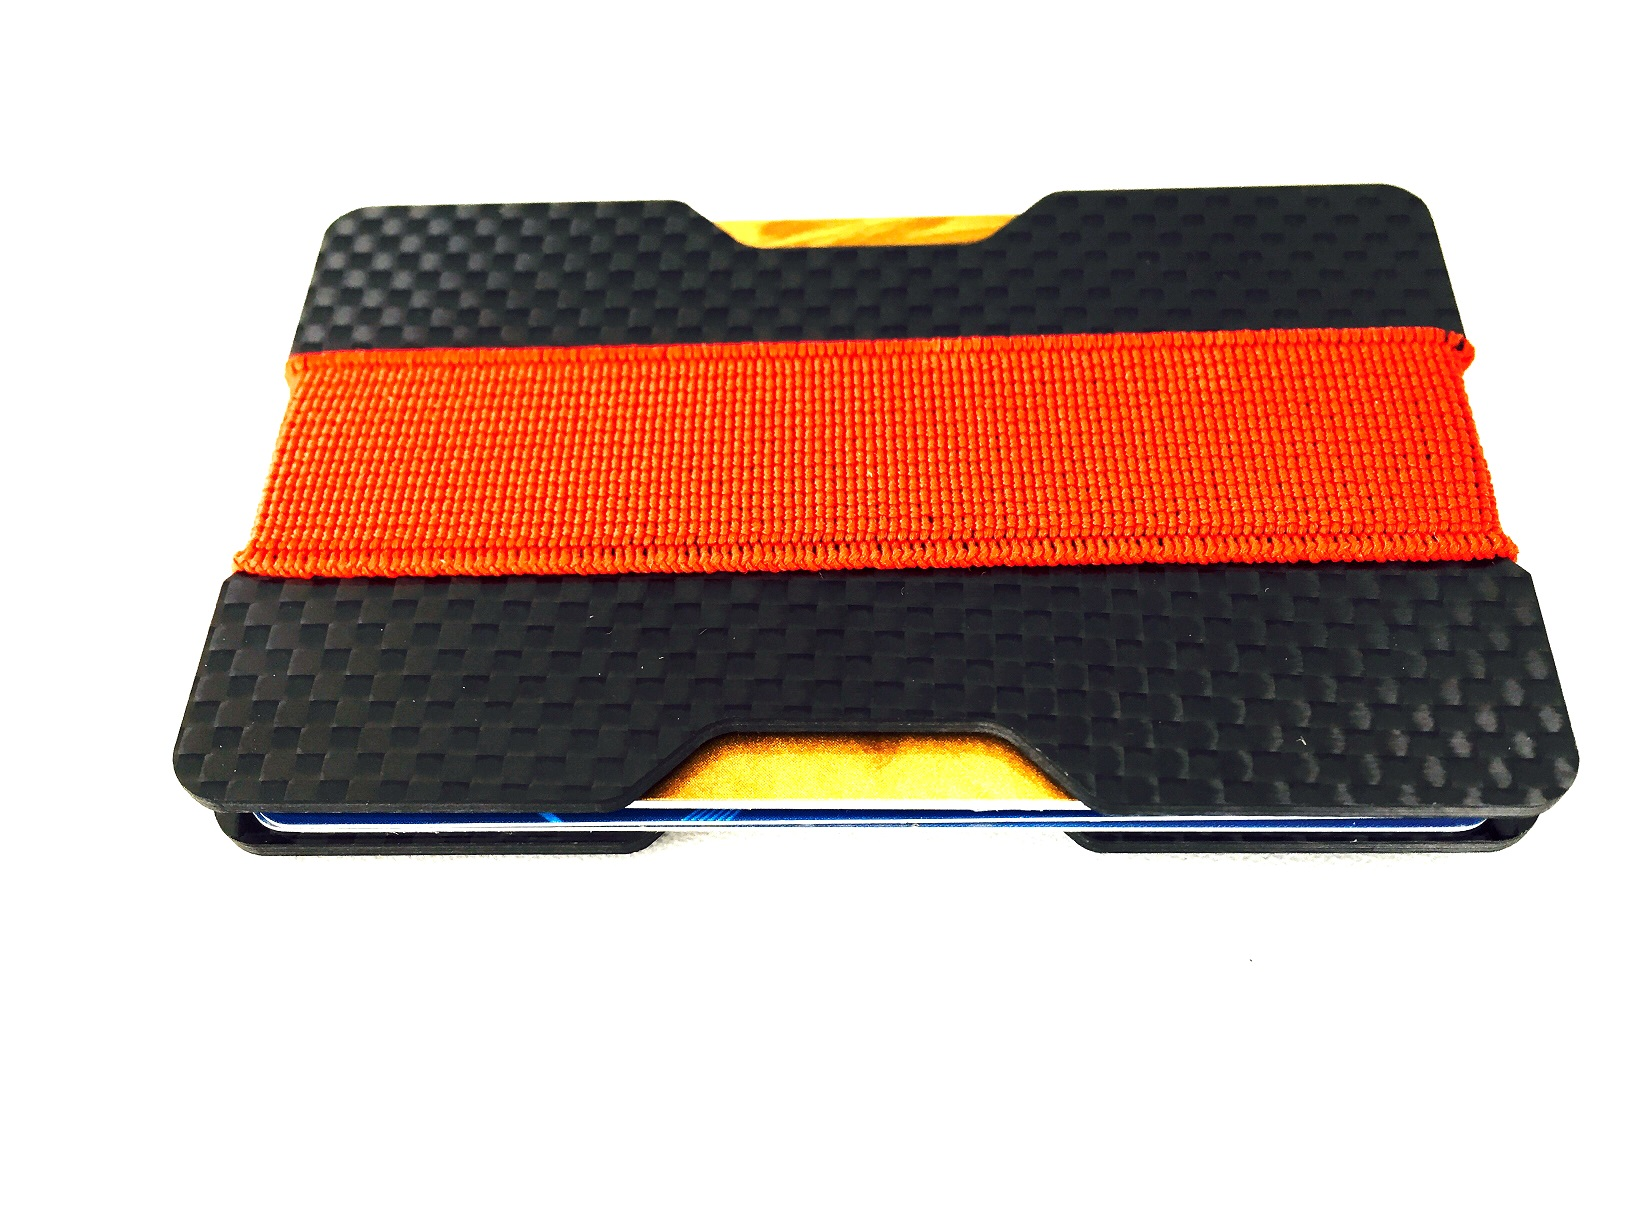 Carbon fiber money holder 2 plates